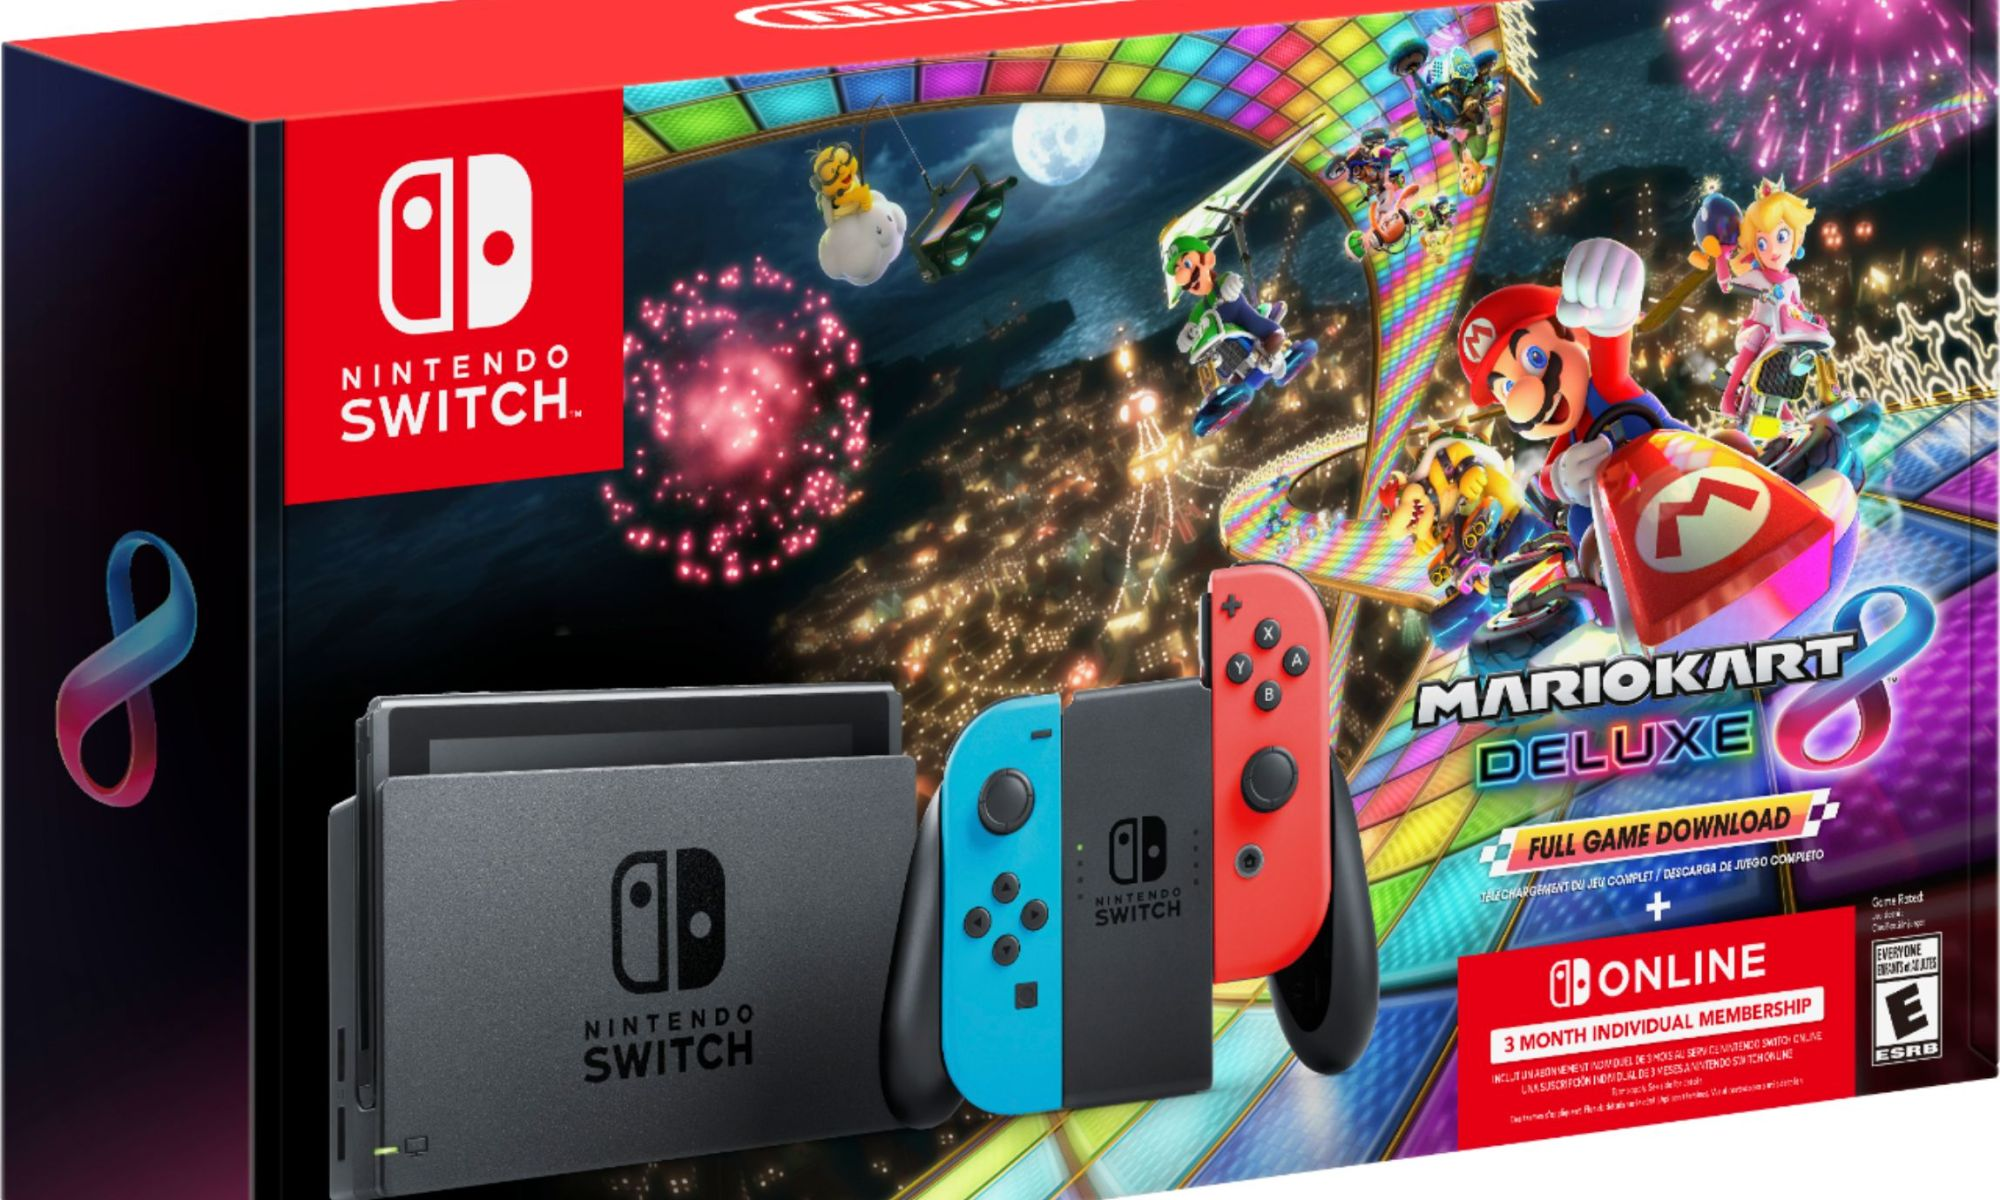 Black Friday 2020 The Mario Kart 8 Deluxe Switch Bundle Is Back For 299 And Includes 3 Months Switch Online My Nintendo News